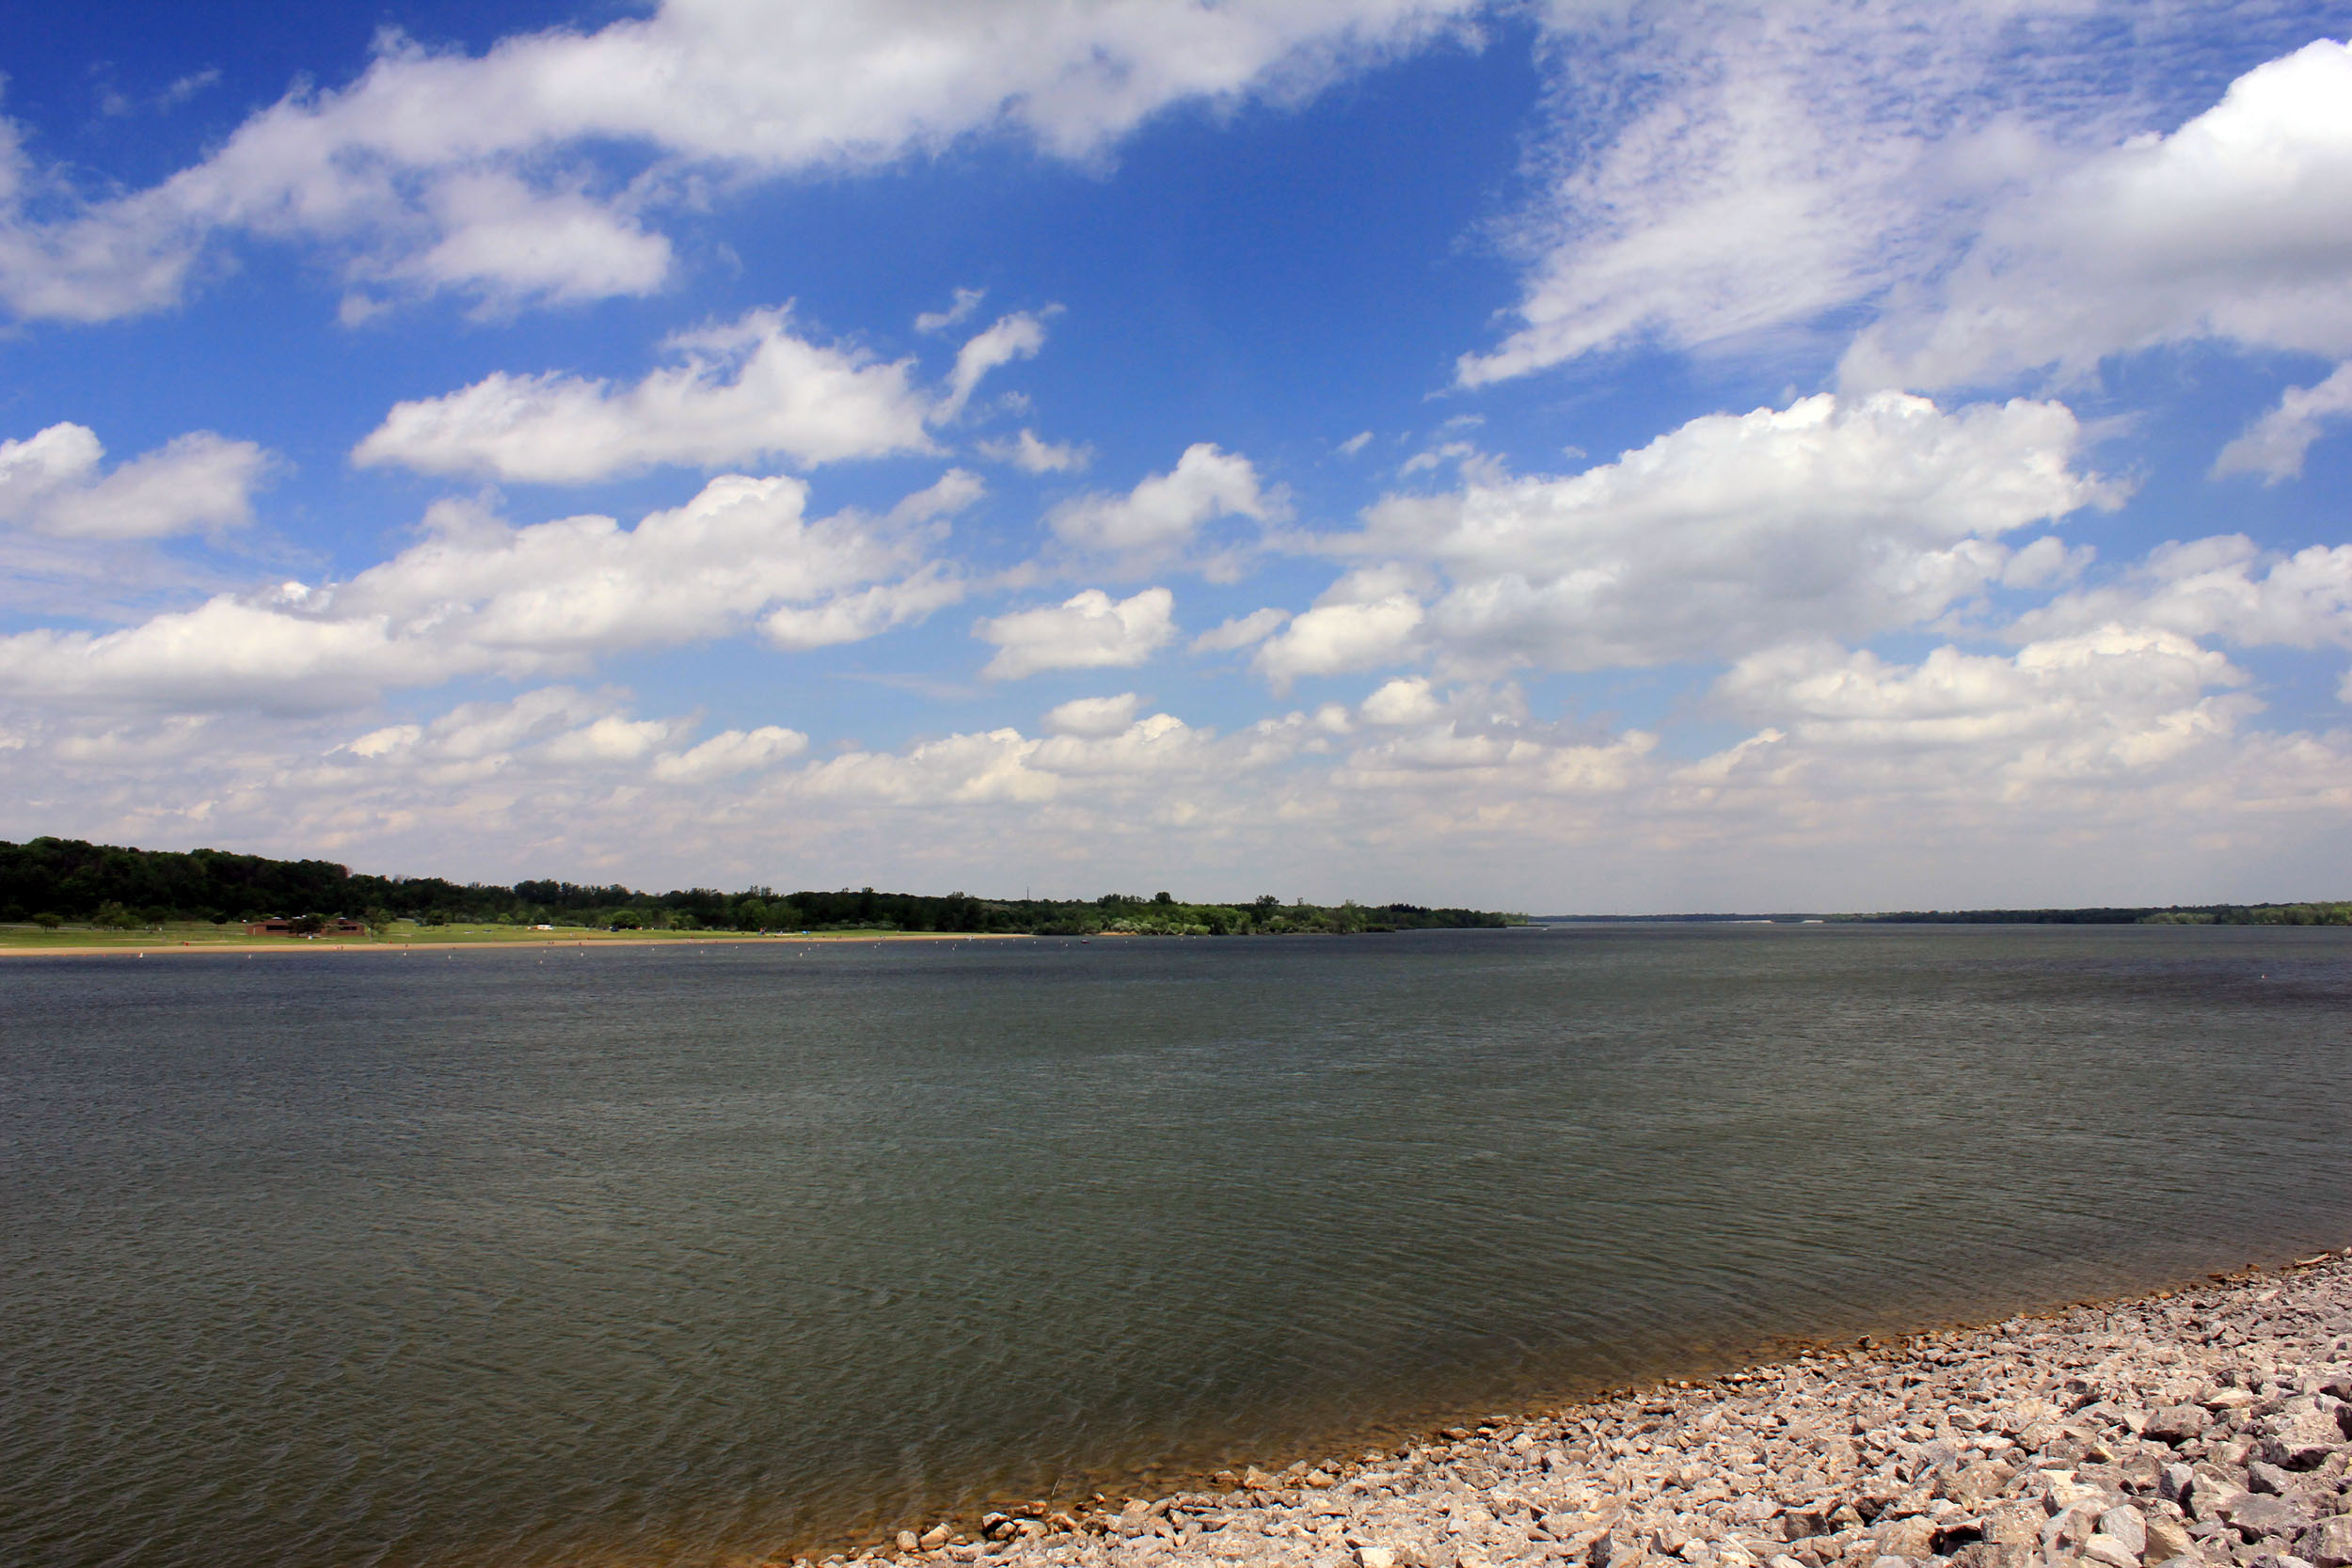 File:Gfp-ohio-alum-creek-state-park-another-view-of-lake-and-sky.jpg ...